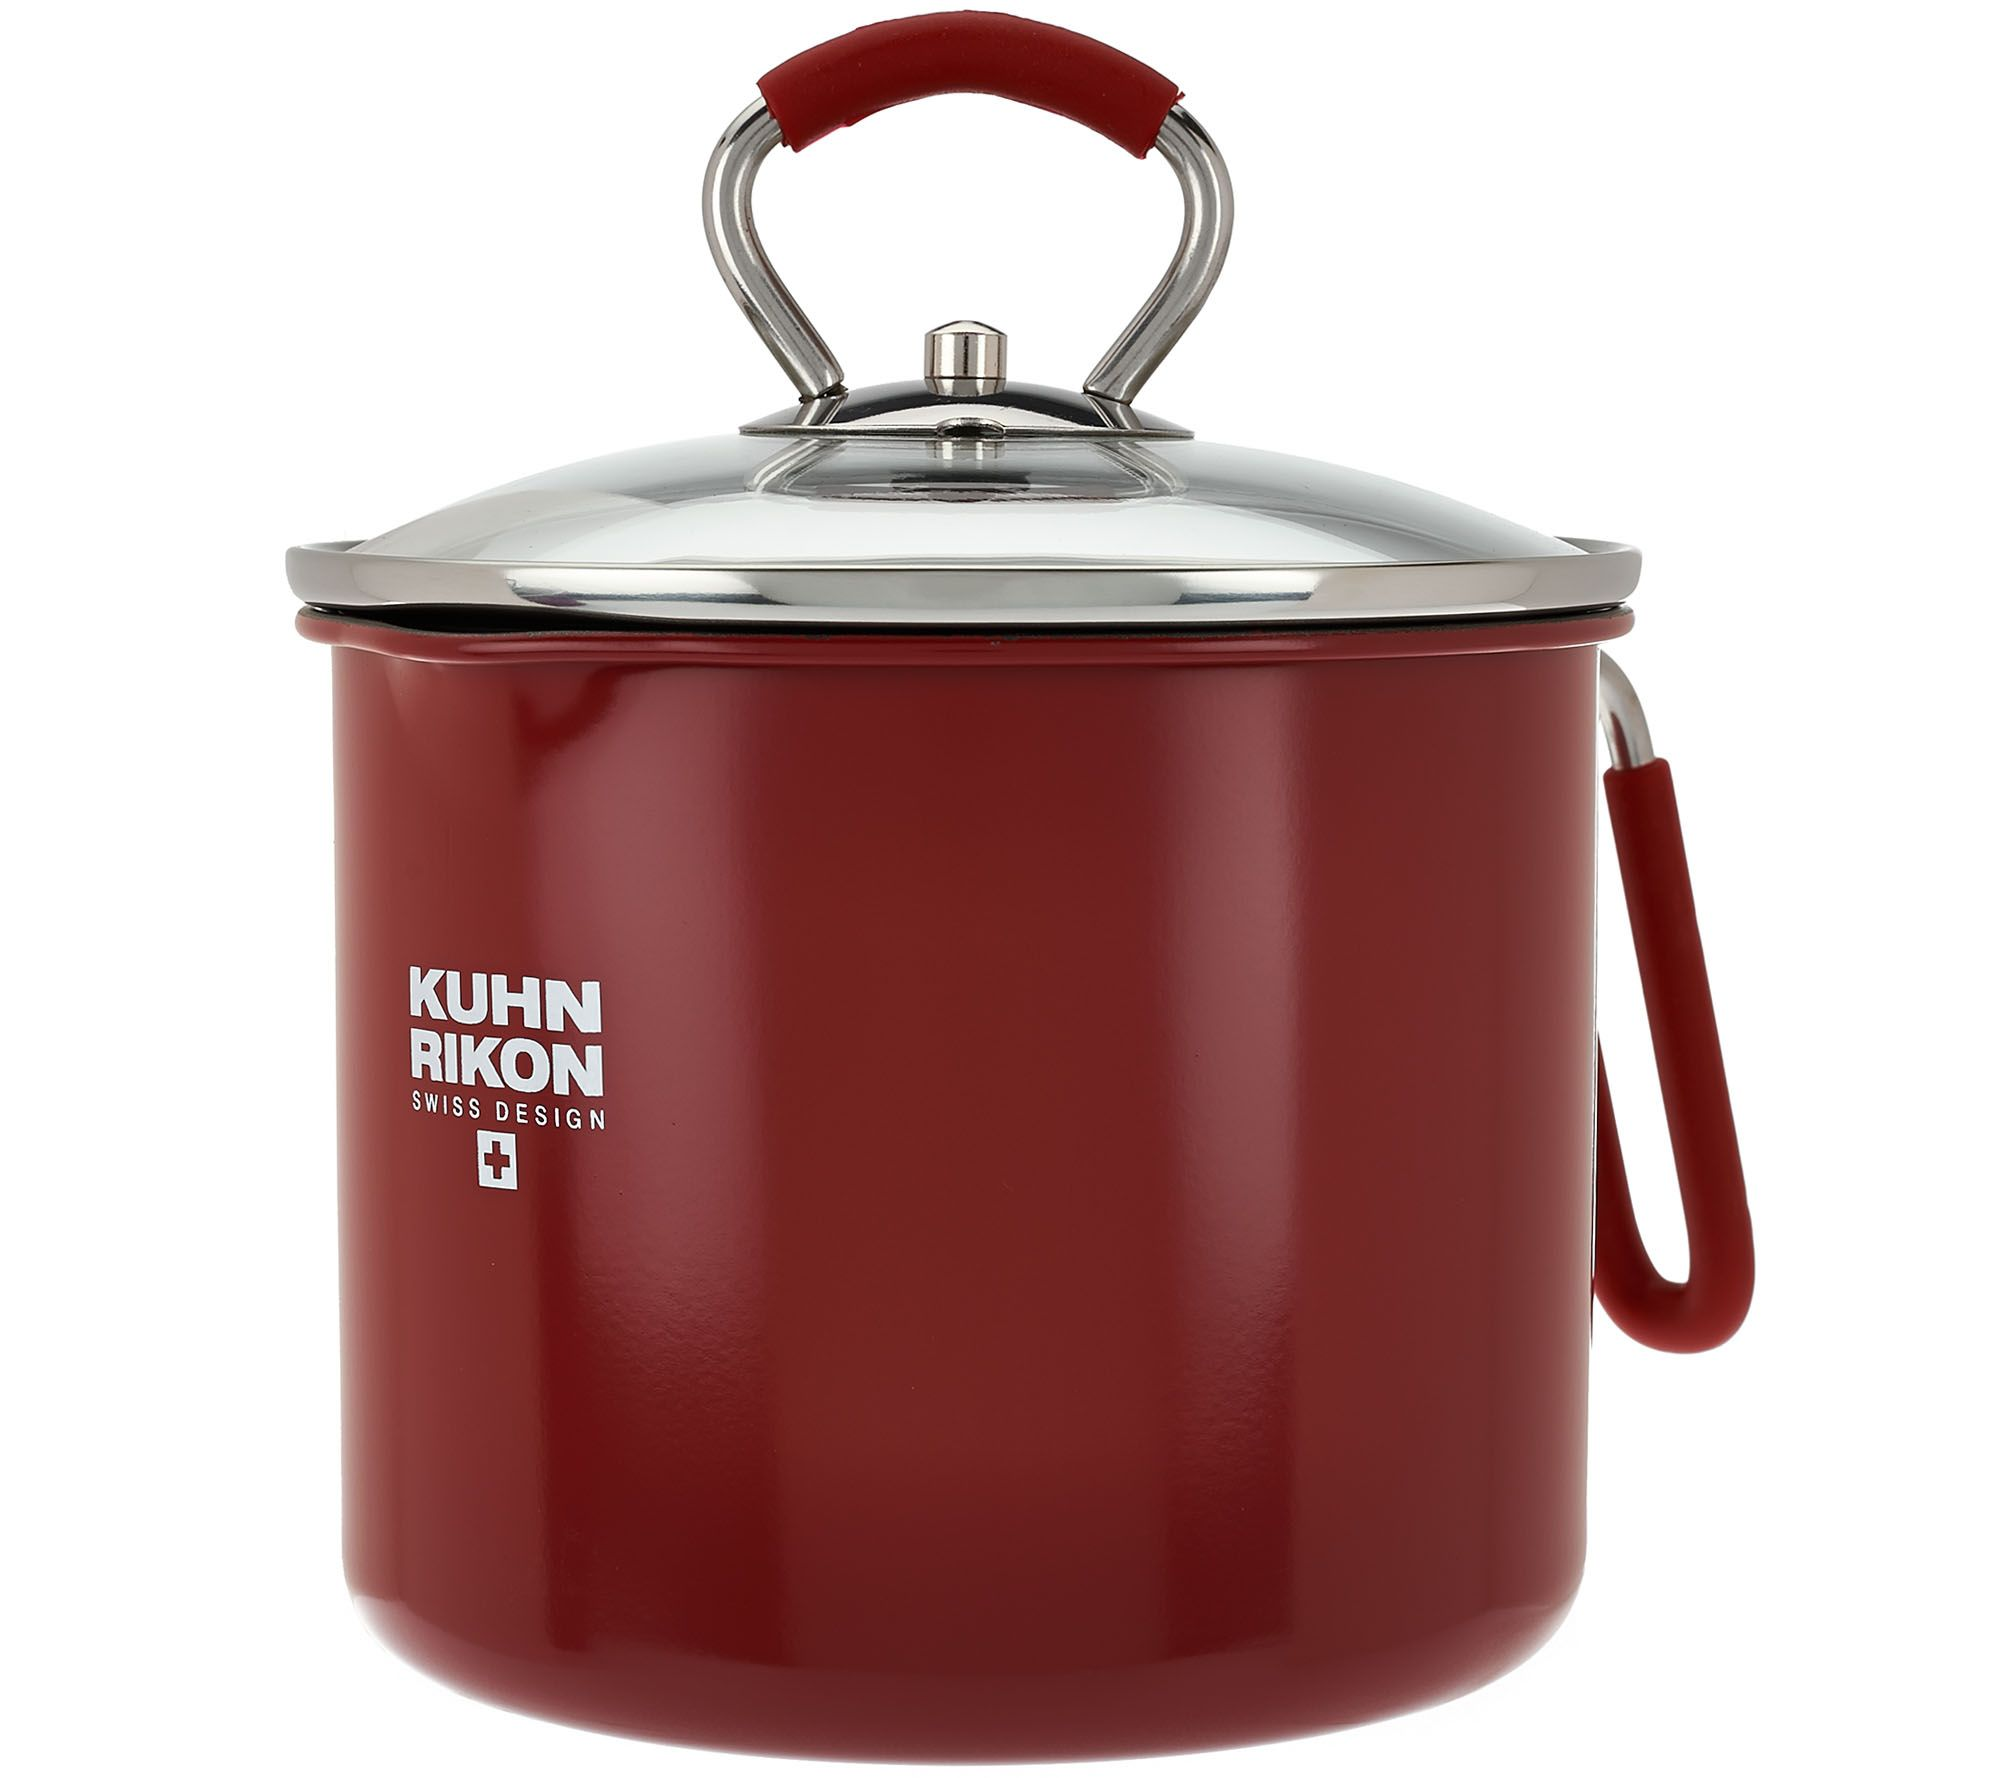 Kuhn Rikon Nonstick Color 7 Cup Multipot by Mark Charles